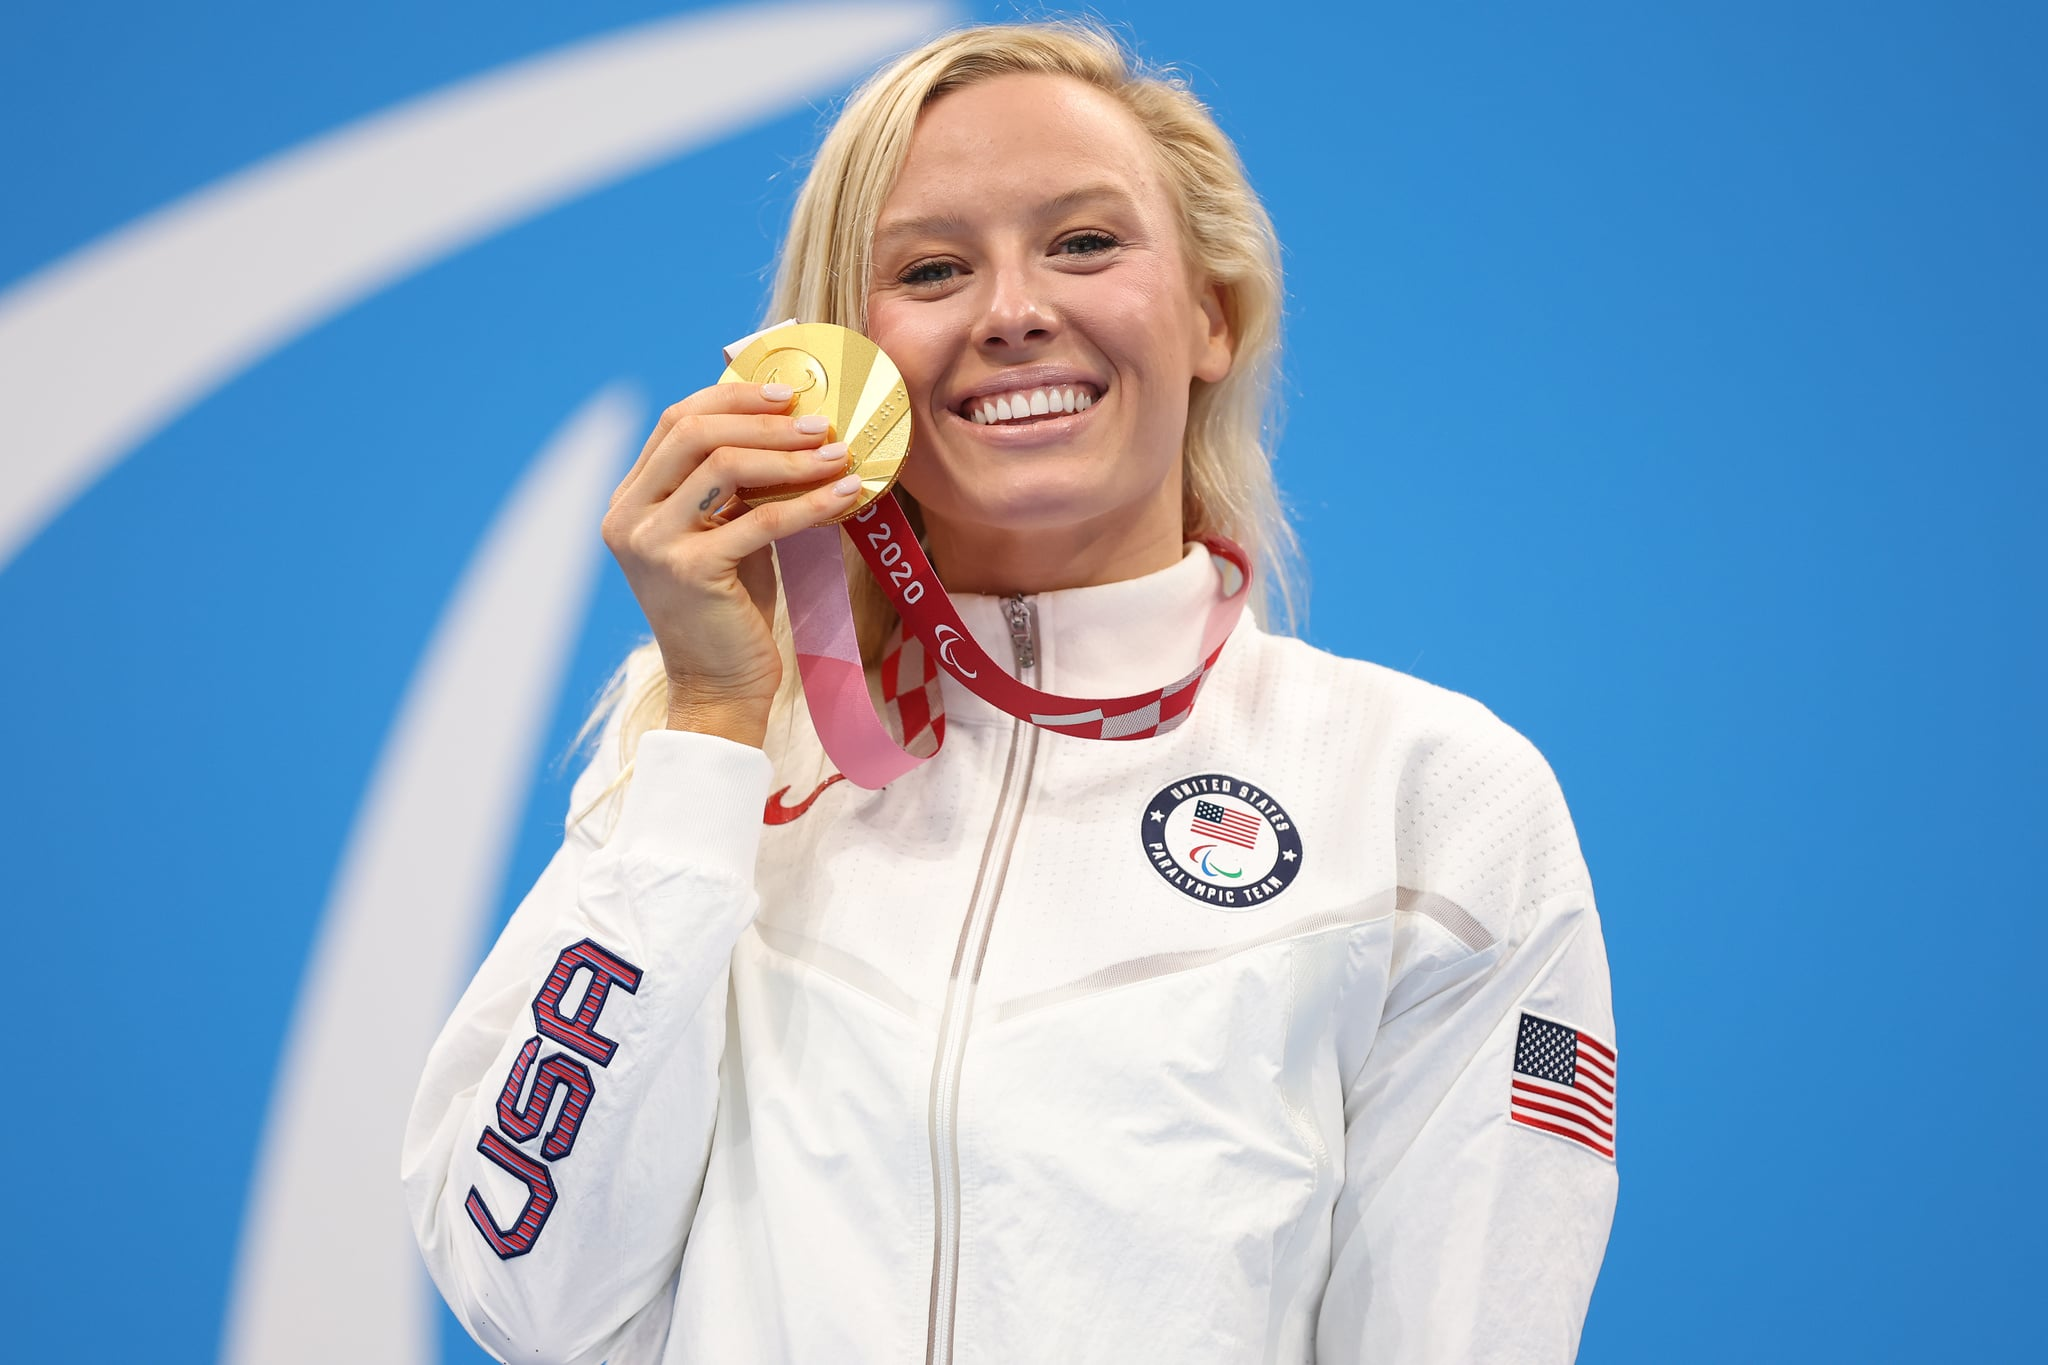 TOKYO, JAPAN - SEPTEMBER 03: Gold medalist Jessica Long of Team United States celebrates during the medal ceremony for the Women's 100m Butterfly - S8 Final on day 10 of the Tokyo 2020 Paralympic Games at Tokyo Aquatics Centre on September 03, 2021 in Tokyo, Japan. (Photo by Alex Pantling/Getty Images)